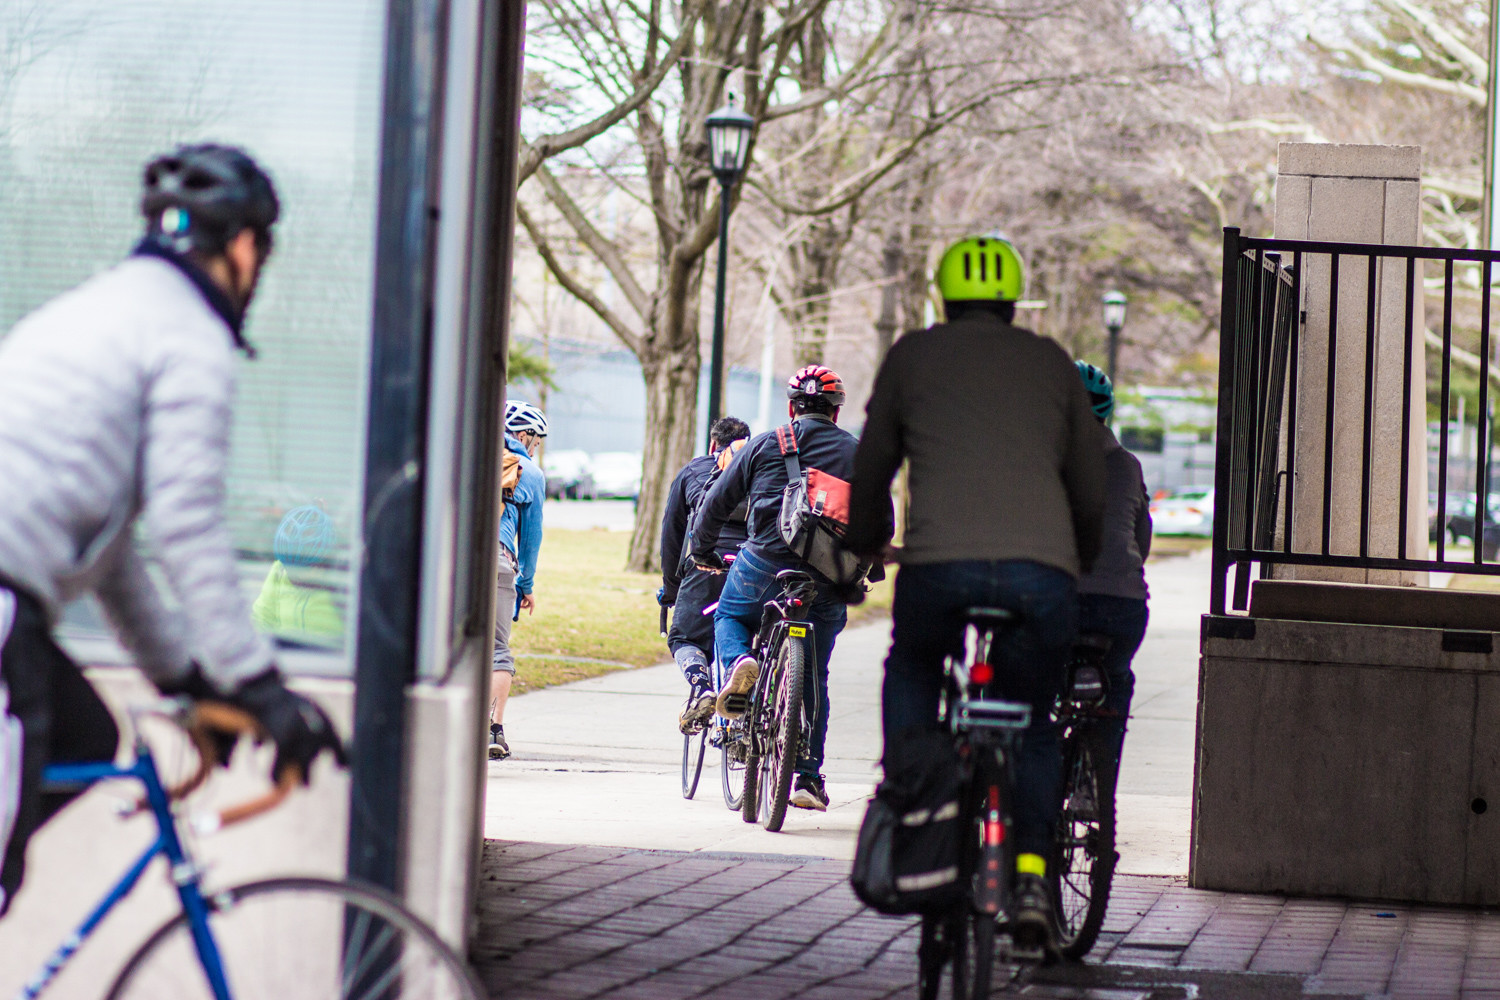 A group of cyclists enter Lehman College's campus for this year's Bronx Parks Speak Up on Feb. 24. Organized by the nonprofit Transportation Alternatives, the Saturday morning ride across the Bronx's different parks is now in its fourth year.